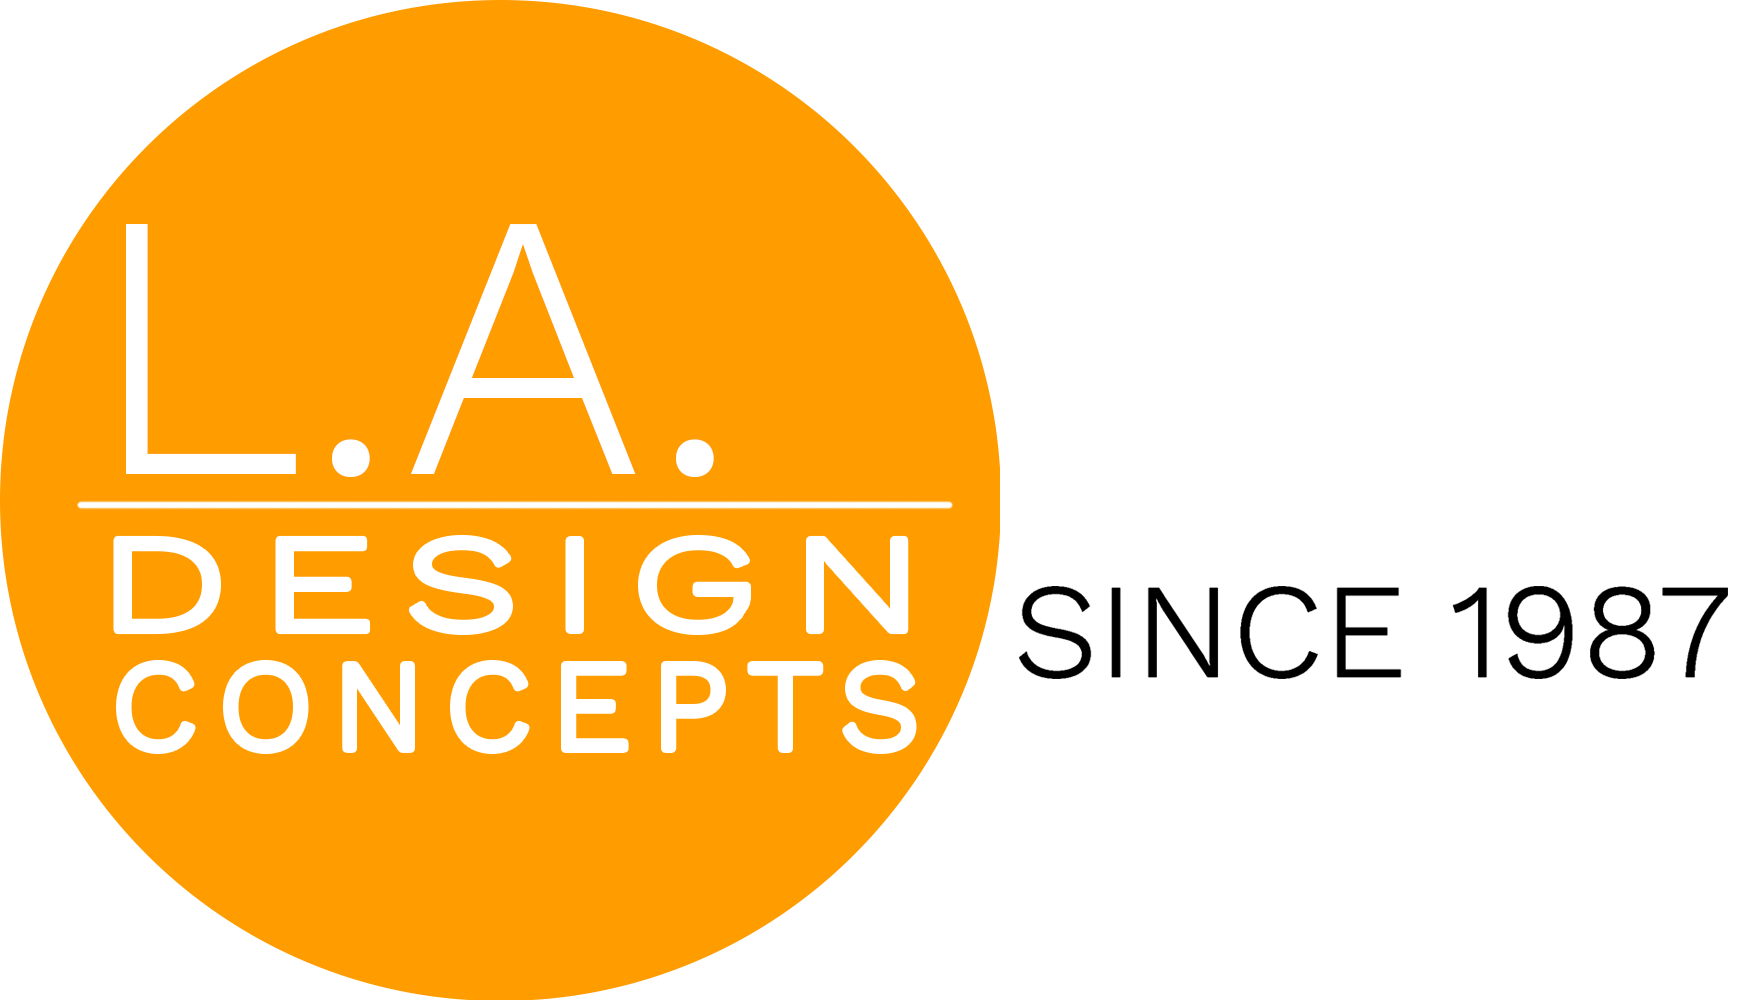 L.A. Design Concepts